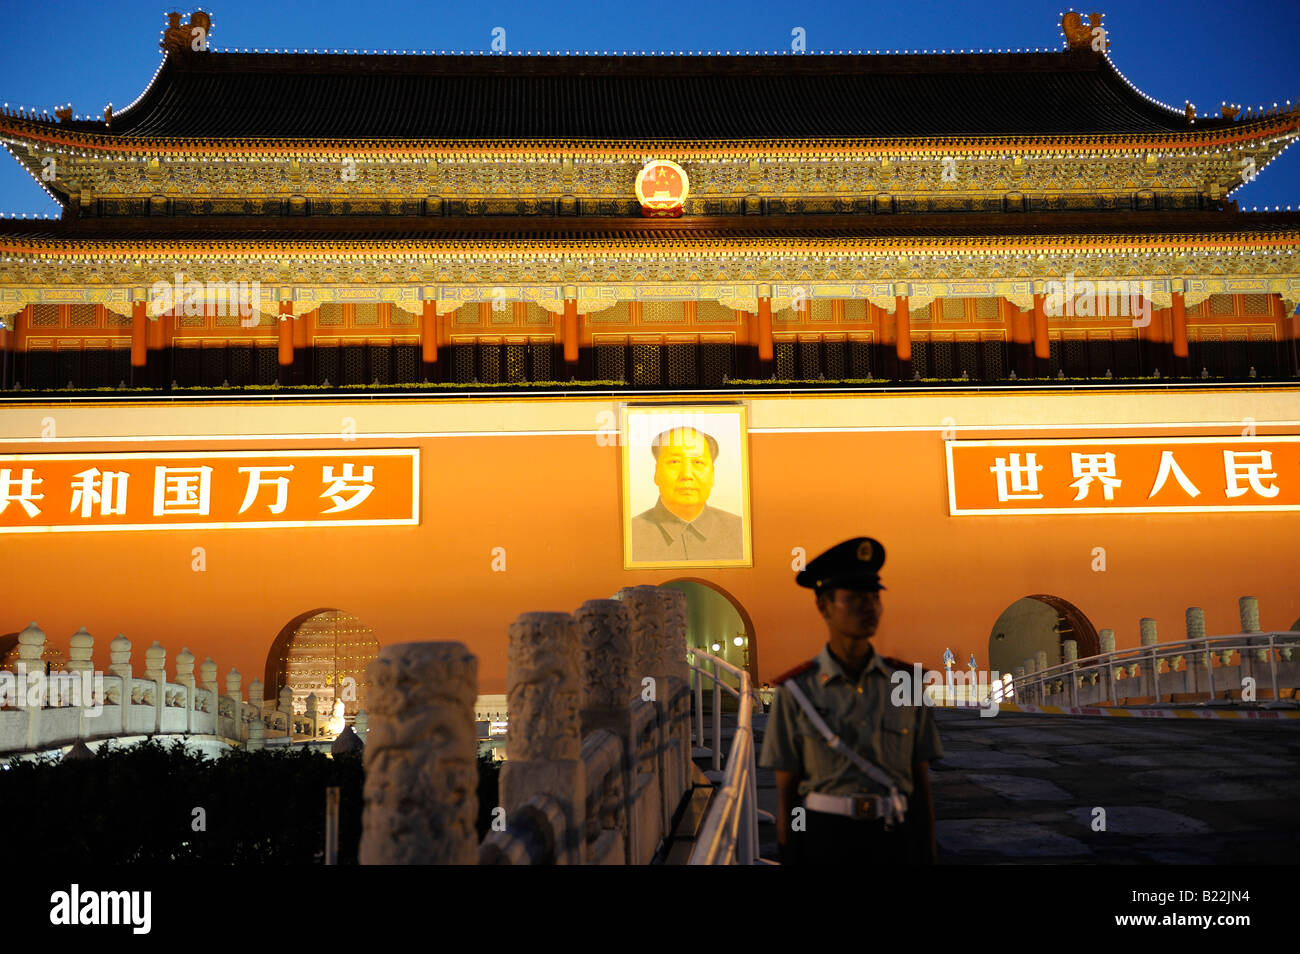 PLA soldier on guard in front of Tiananmen Gate in Beijing, China. 12-Jul-2008 Stock Photo